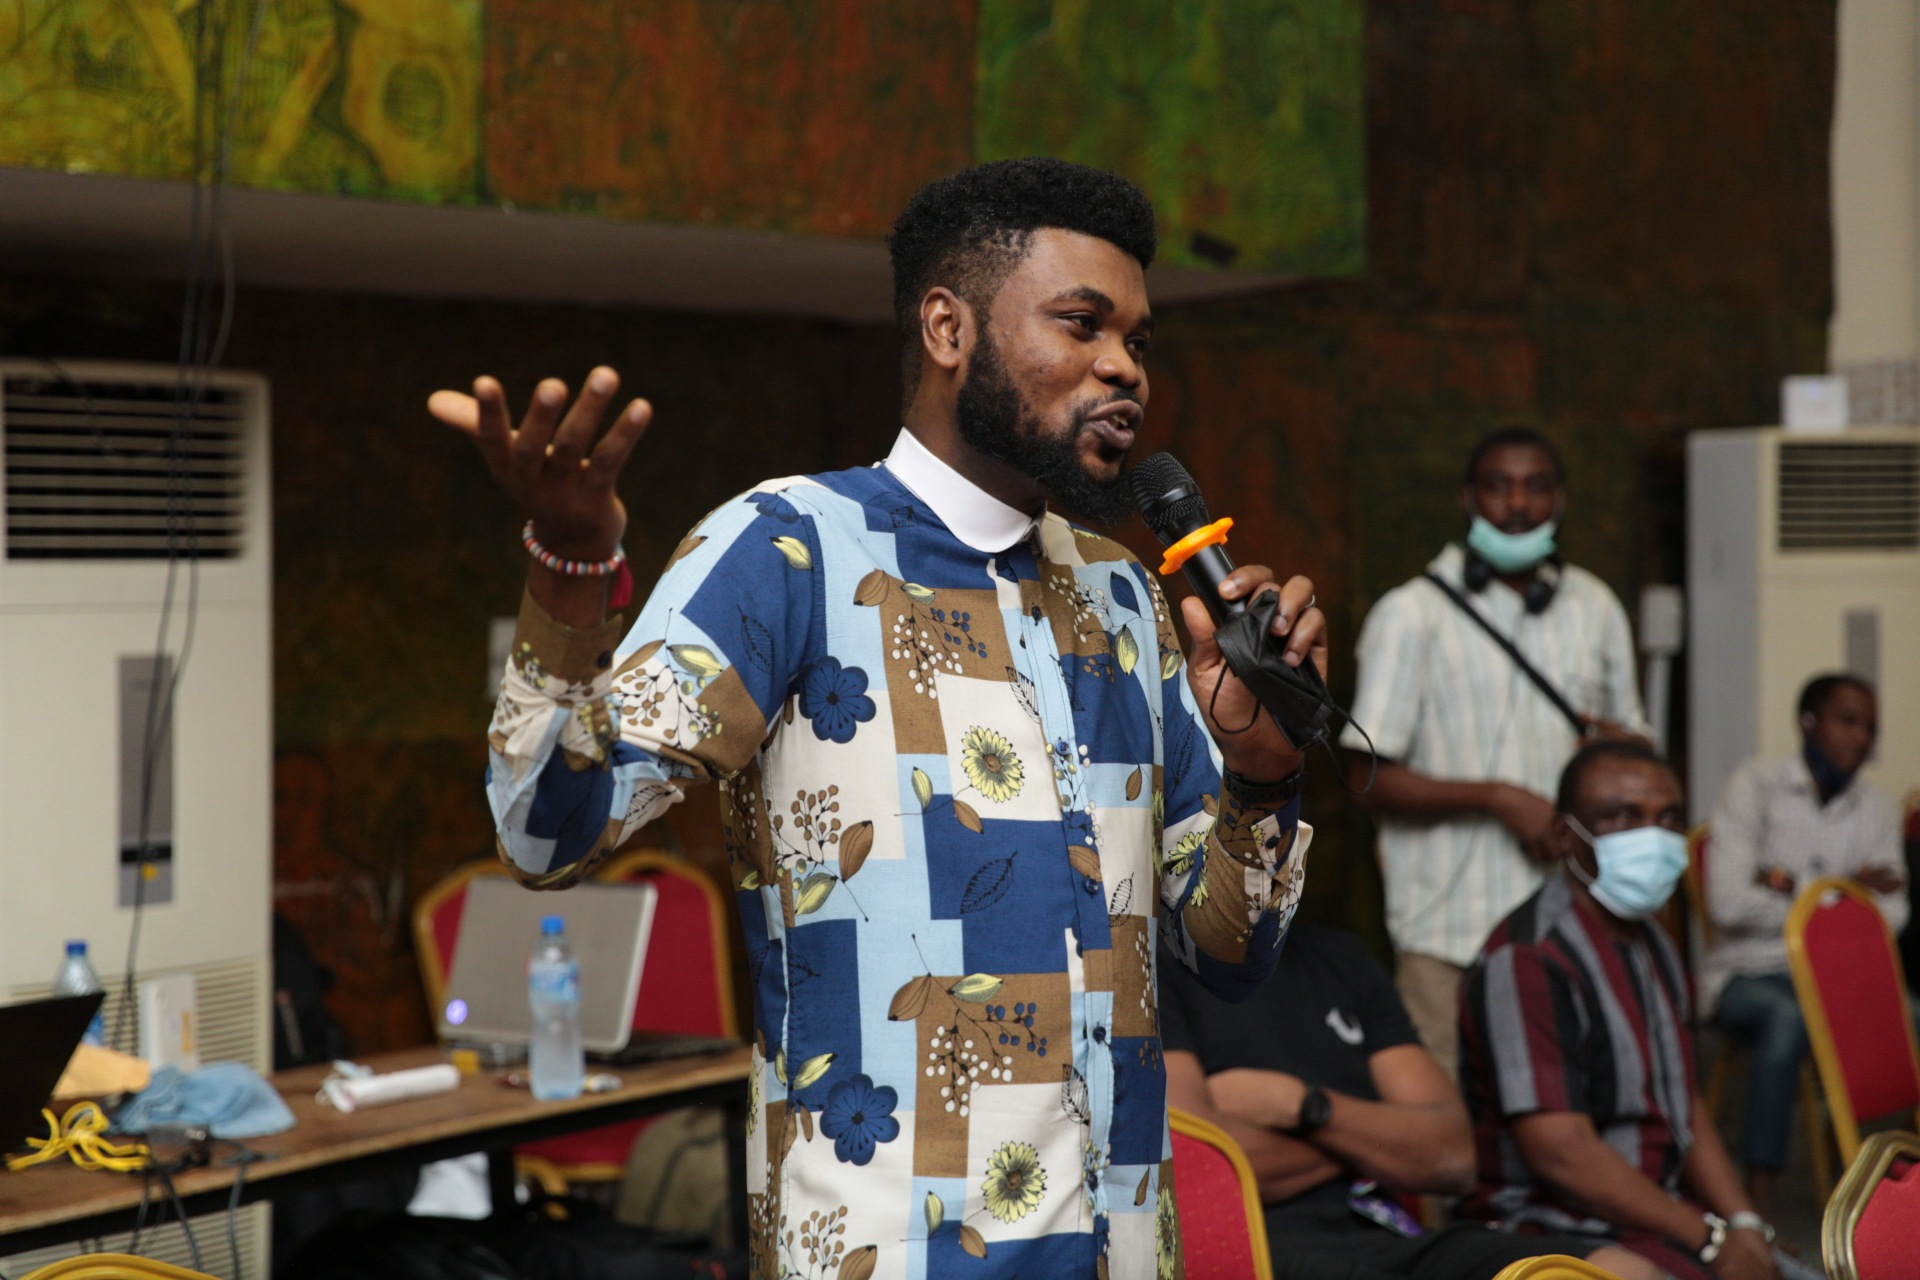 Comedian, Omobaba during the QnA session.